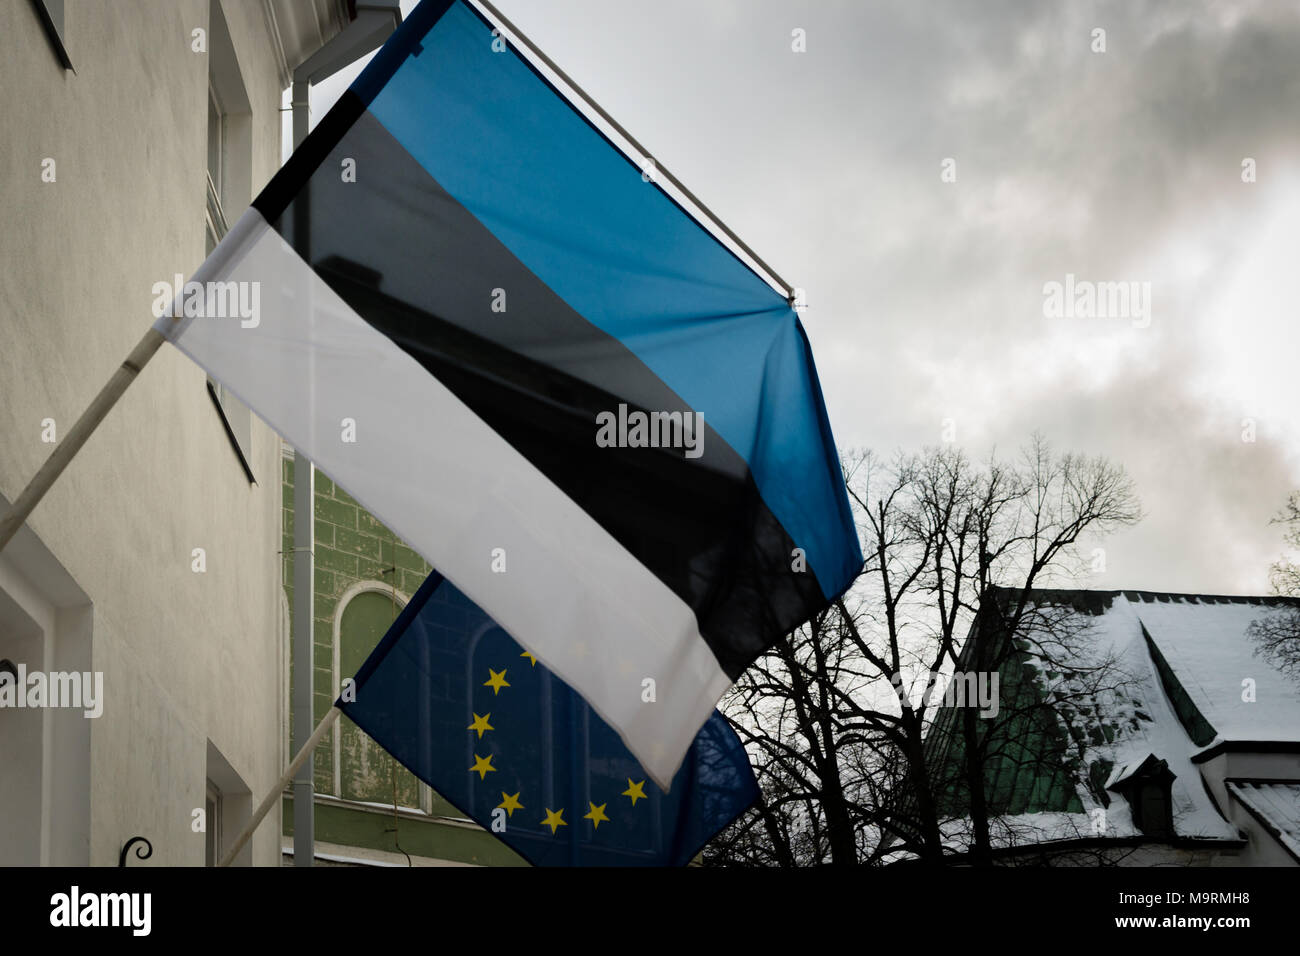 Estonian flag, flag of Estonia, waiving in the city. - Stock Image